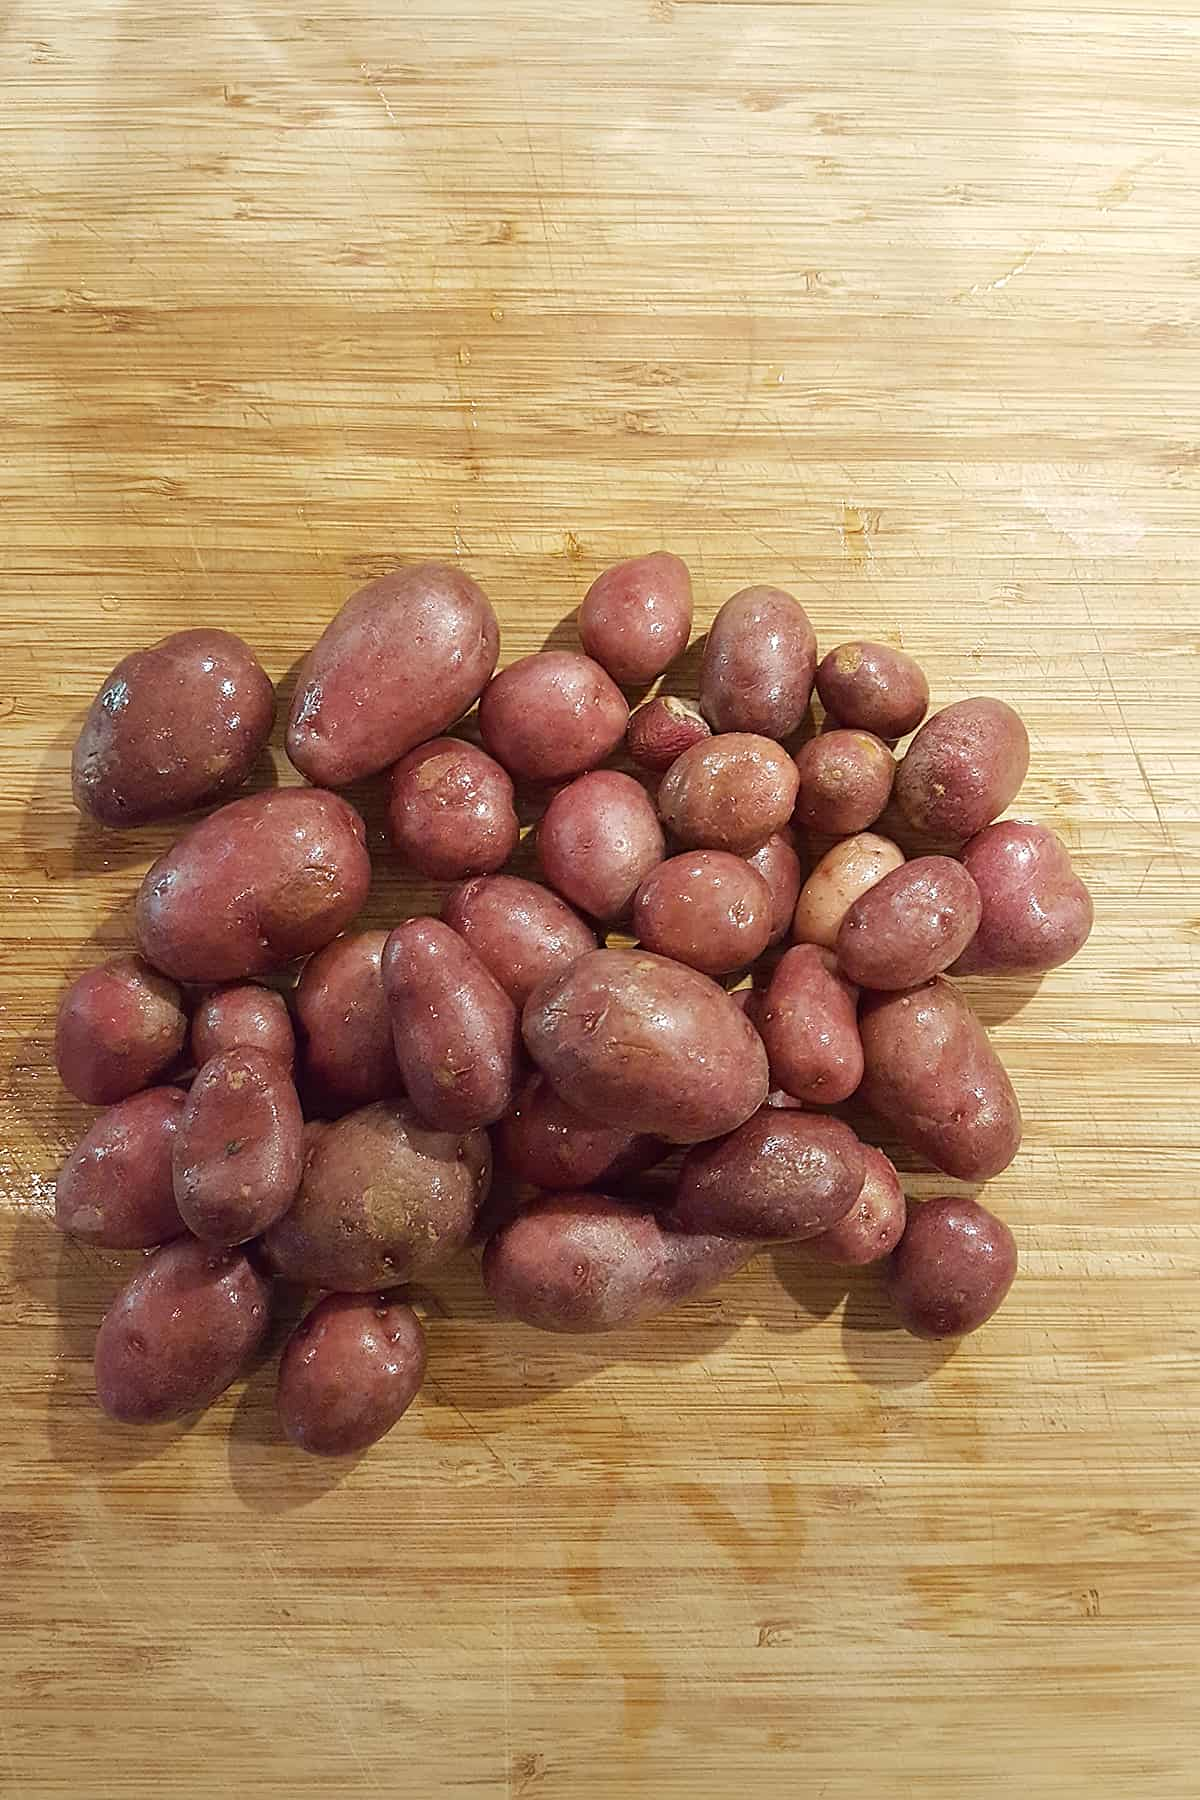 Wash the potatoes well to remove any dirt